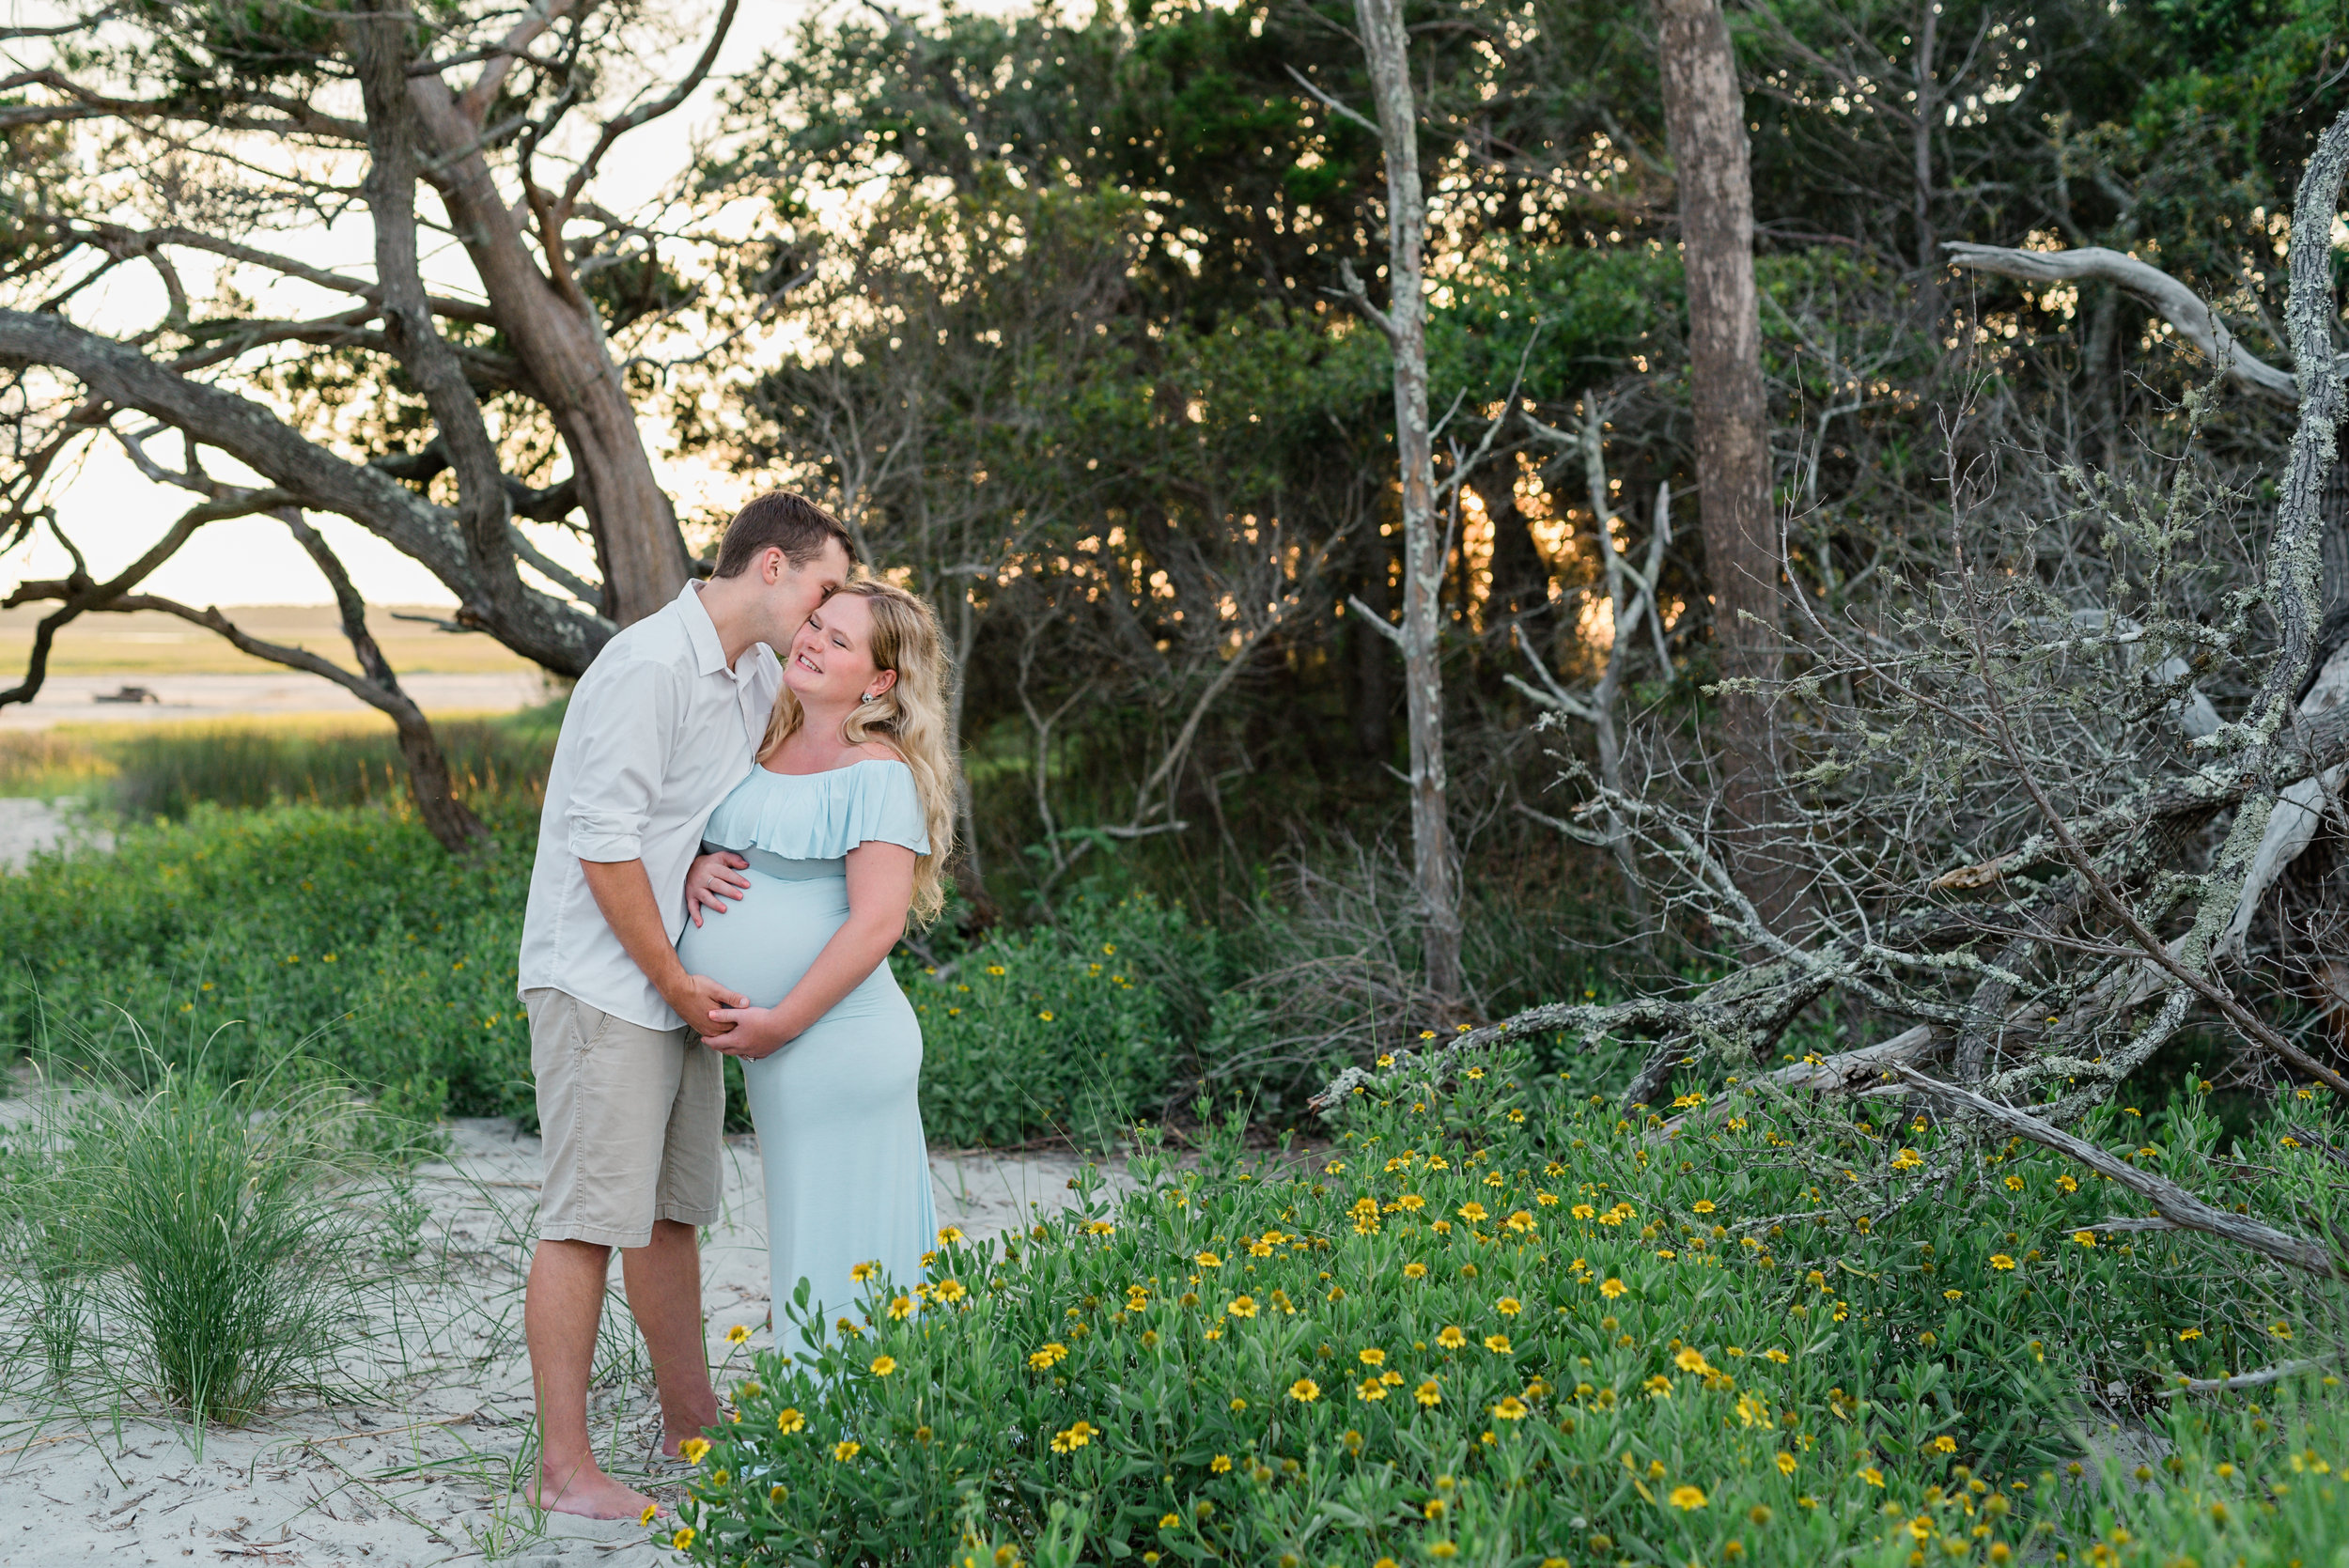 Folly-Beach-Maternity-Photographer-Following-Seas-Photography-7003 copy.jpg